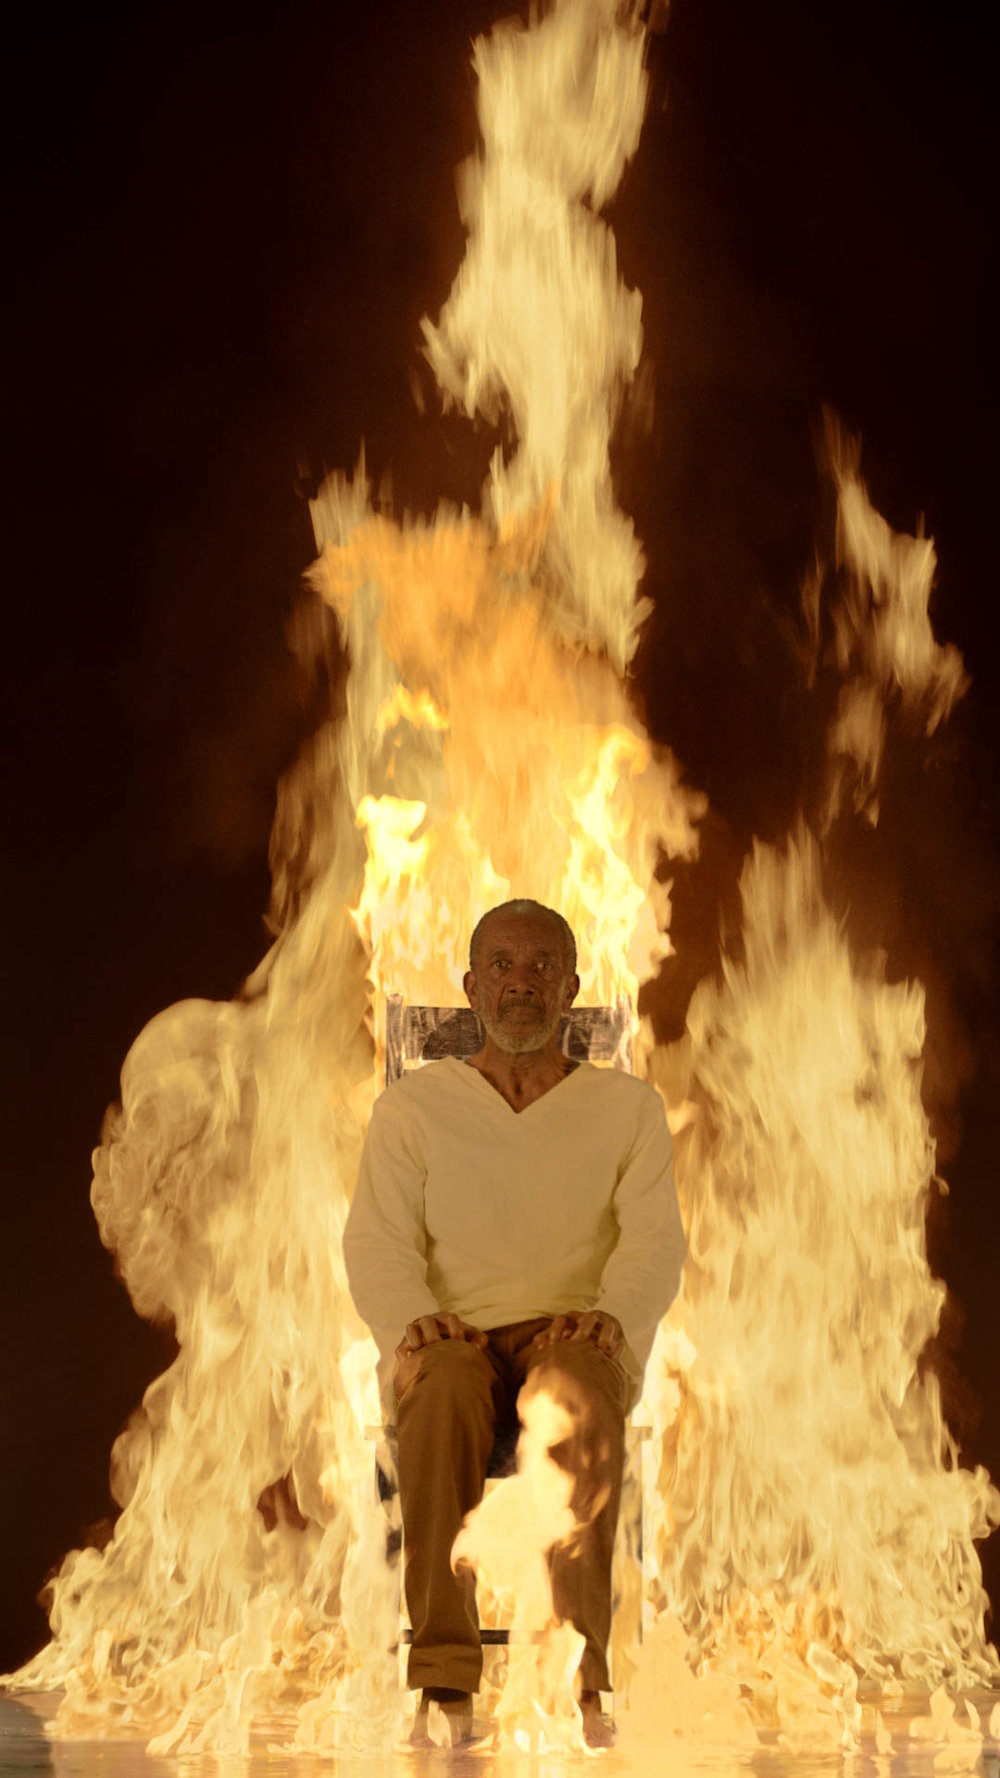 Bill Viola,  Fire Martyr , 2014, Color High-Definition video on flat panel display, 42 3/8 x 24 1/2 x 2 5/8 in. (107.6 x 62.1 x 6.8 cm), 7:10 minutes, Executive producer: Kira Perov, Performer: Darrow Igus